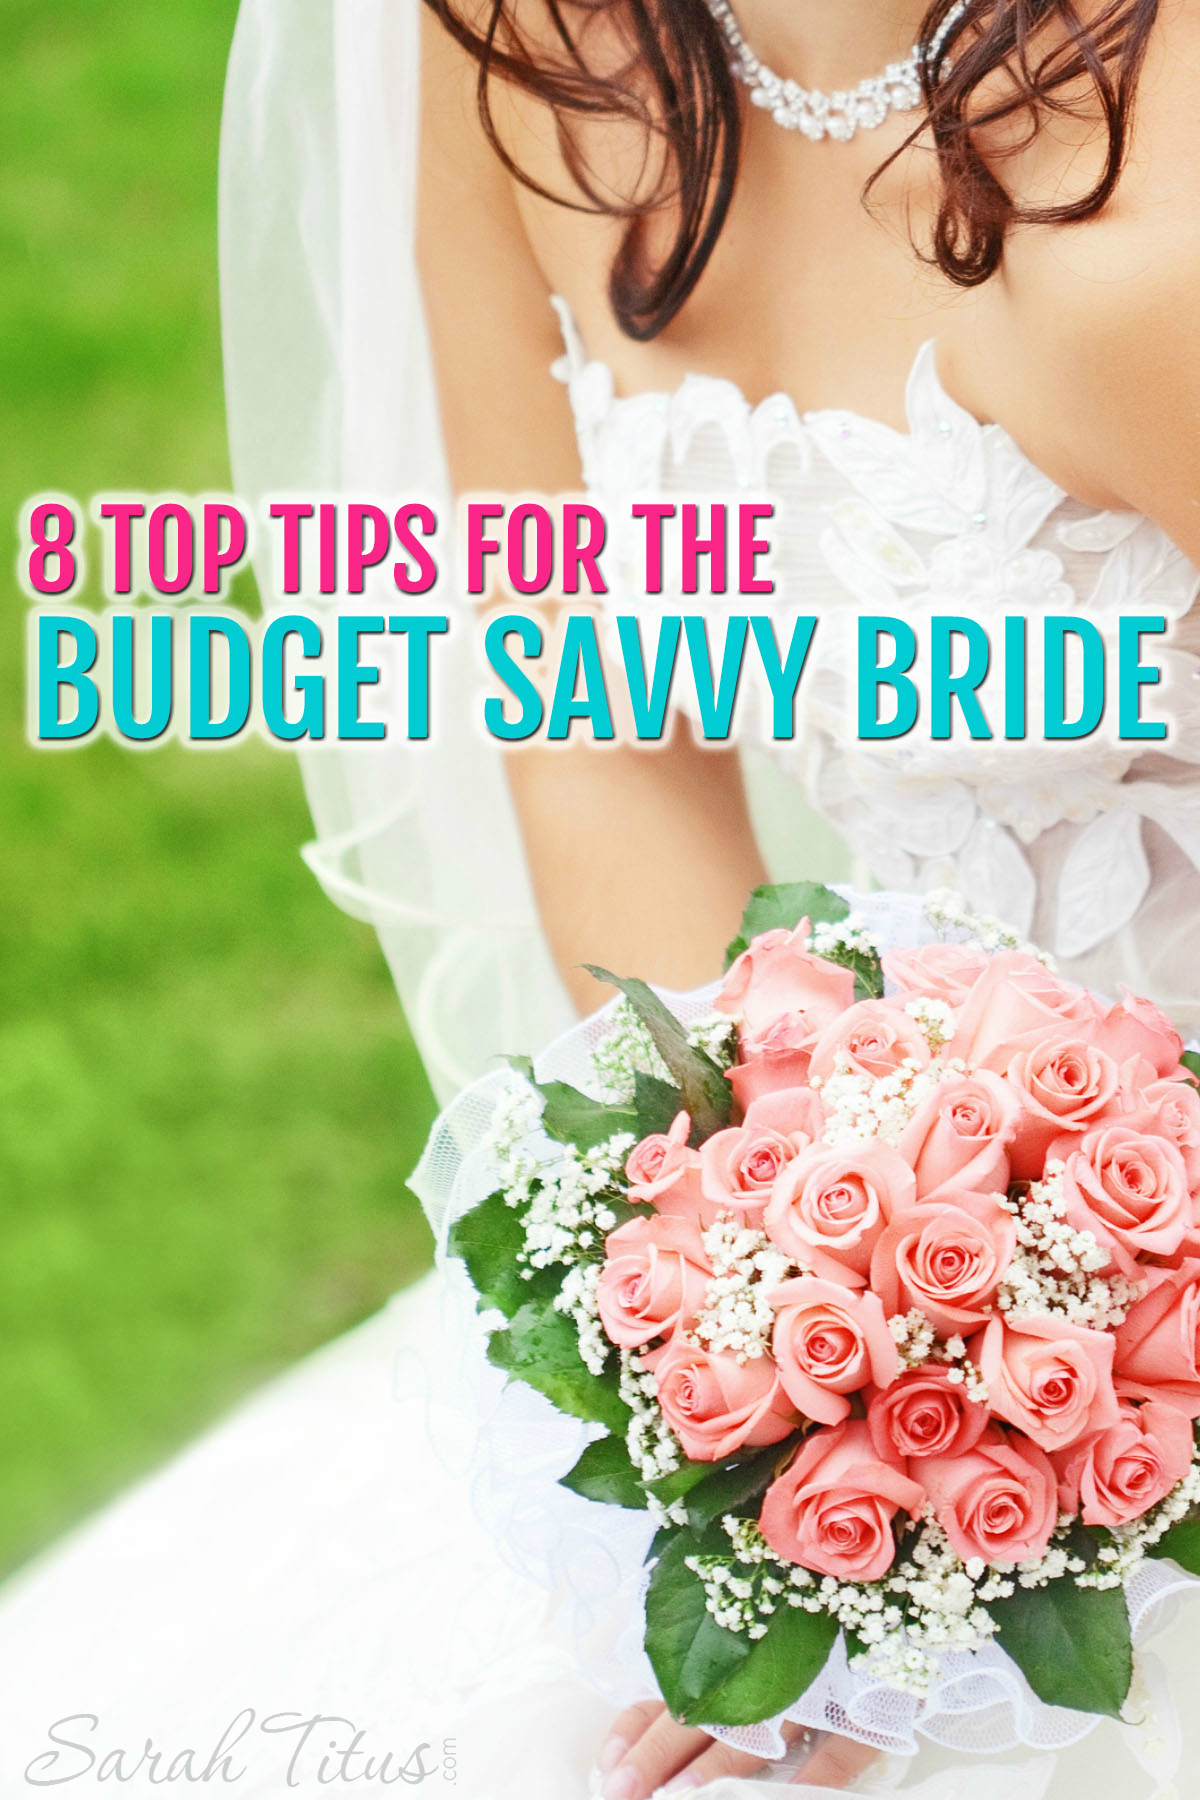 8 Top Tips for the Budget Savvy Bride